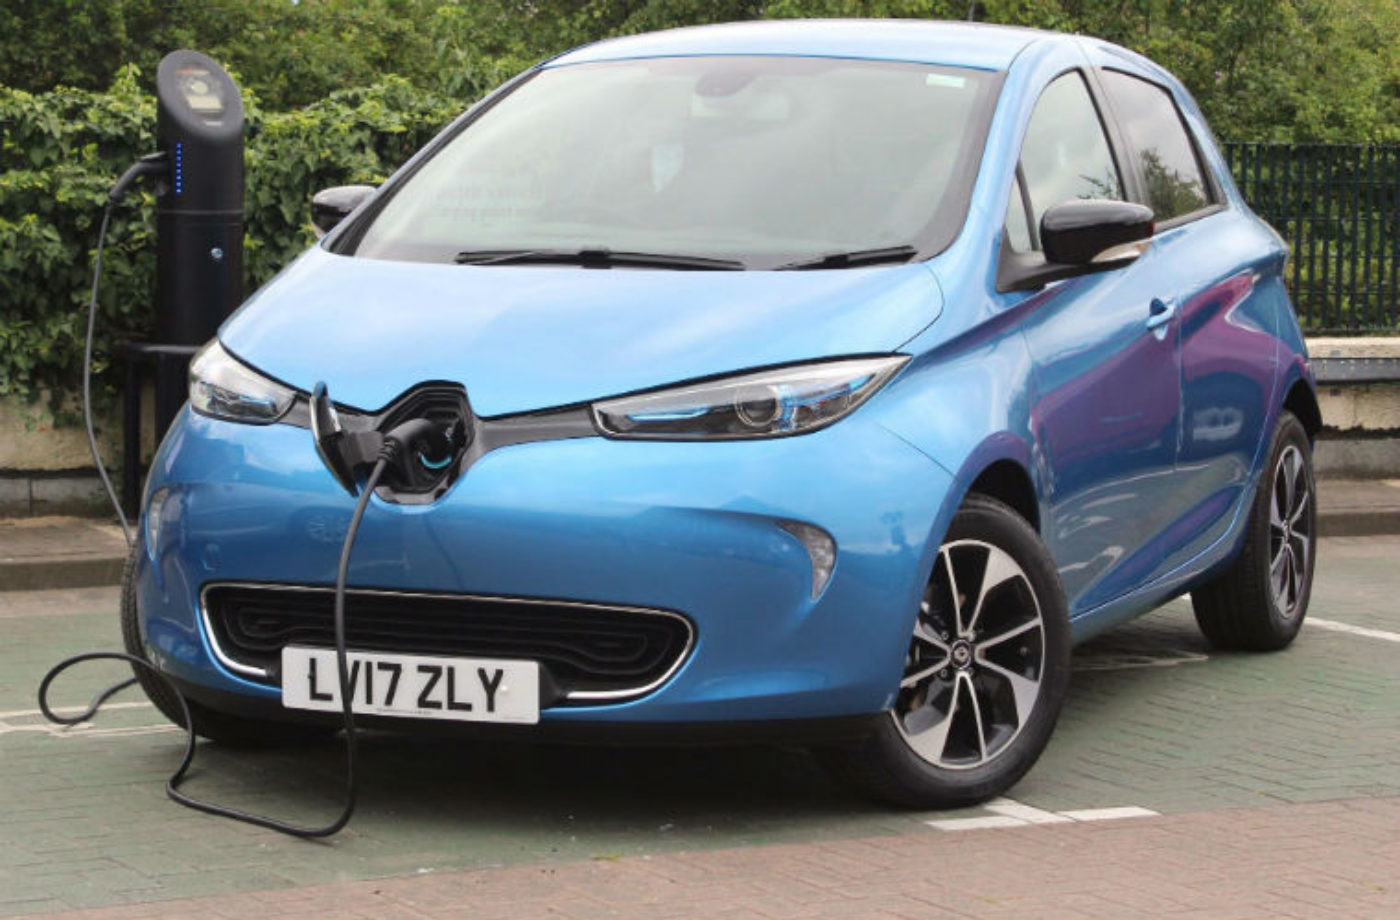 """Transport Minister """"astonished"""" by sudden EV breakdowns as government reviews EV dangers"""